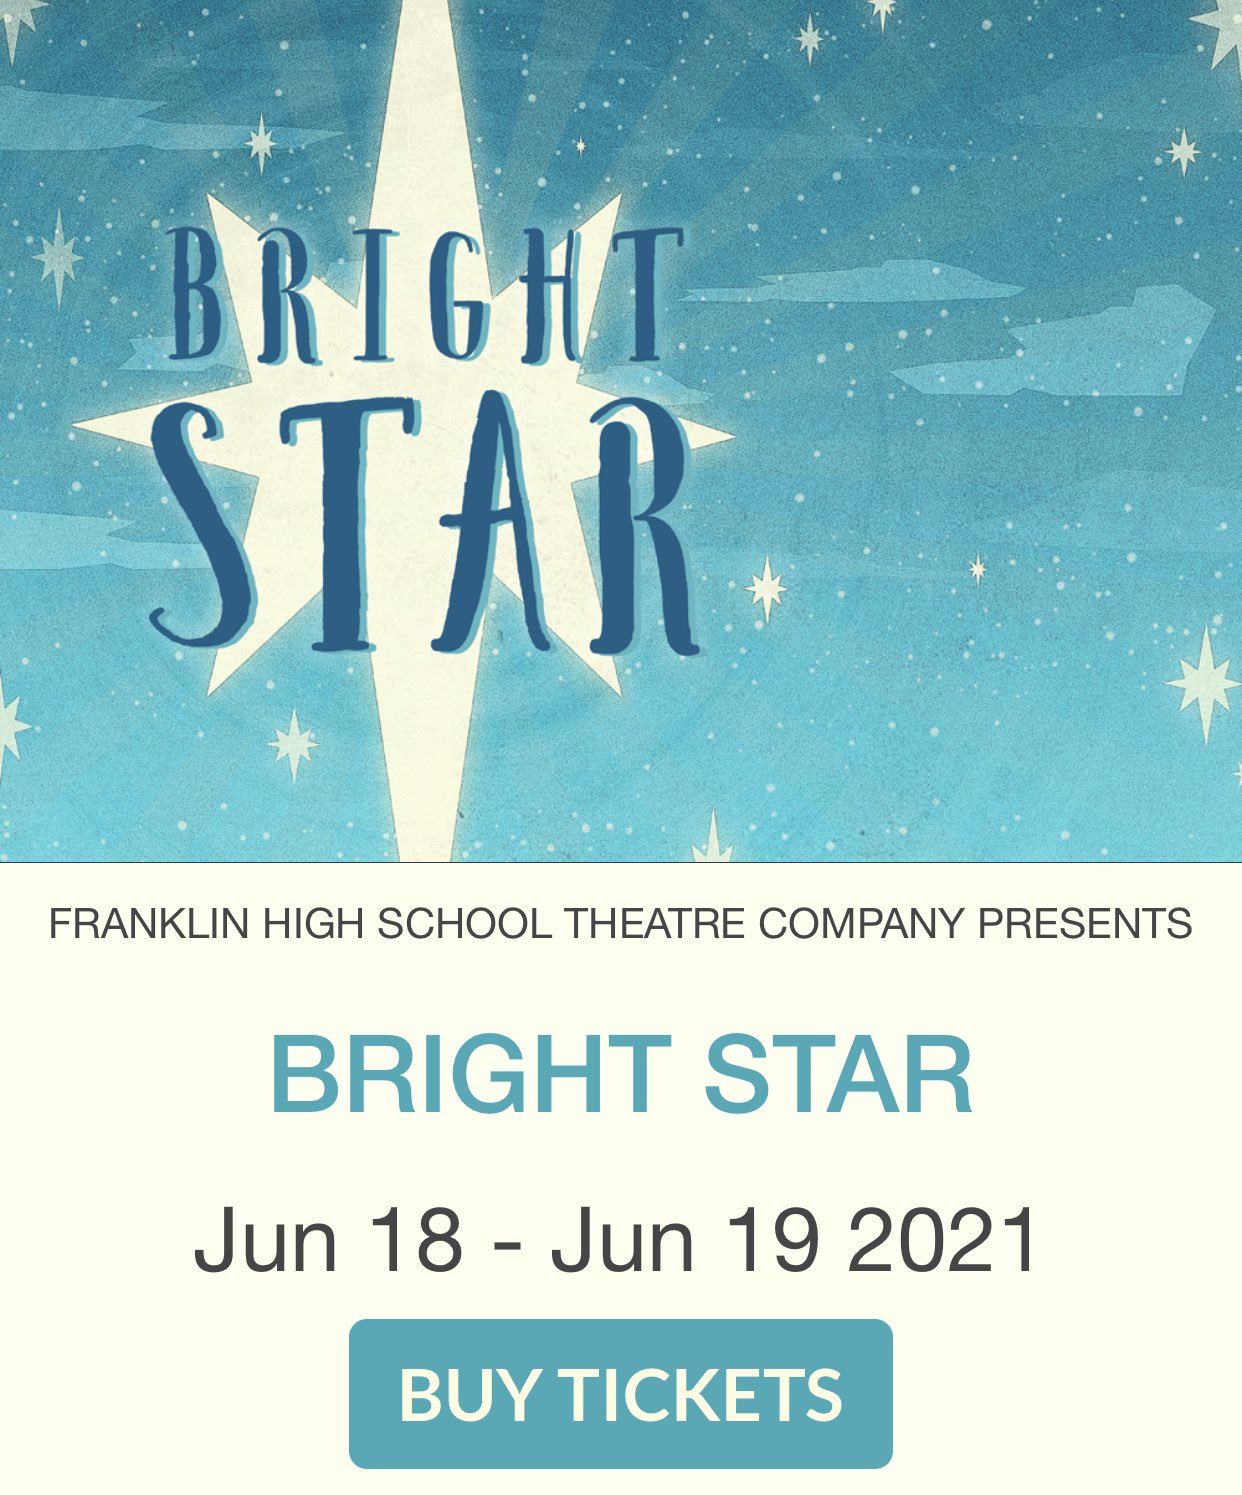 FHS Theatre Company - Our ticket sales are LIVE for Bright Star - Concert Version!